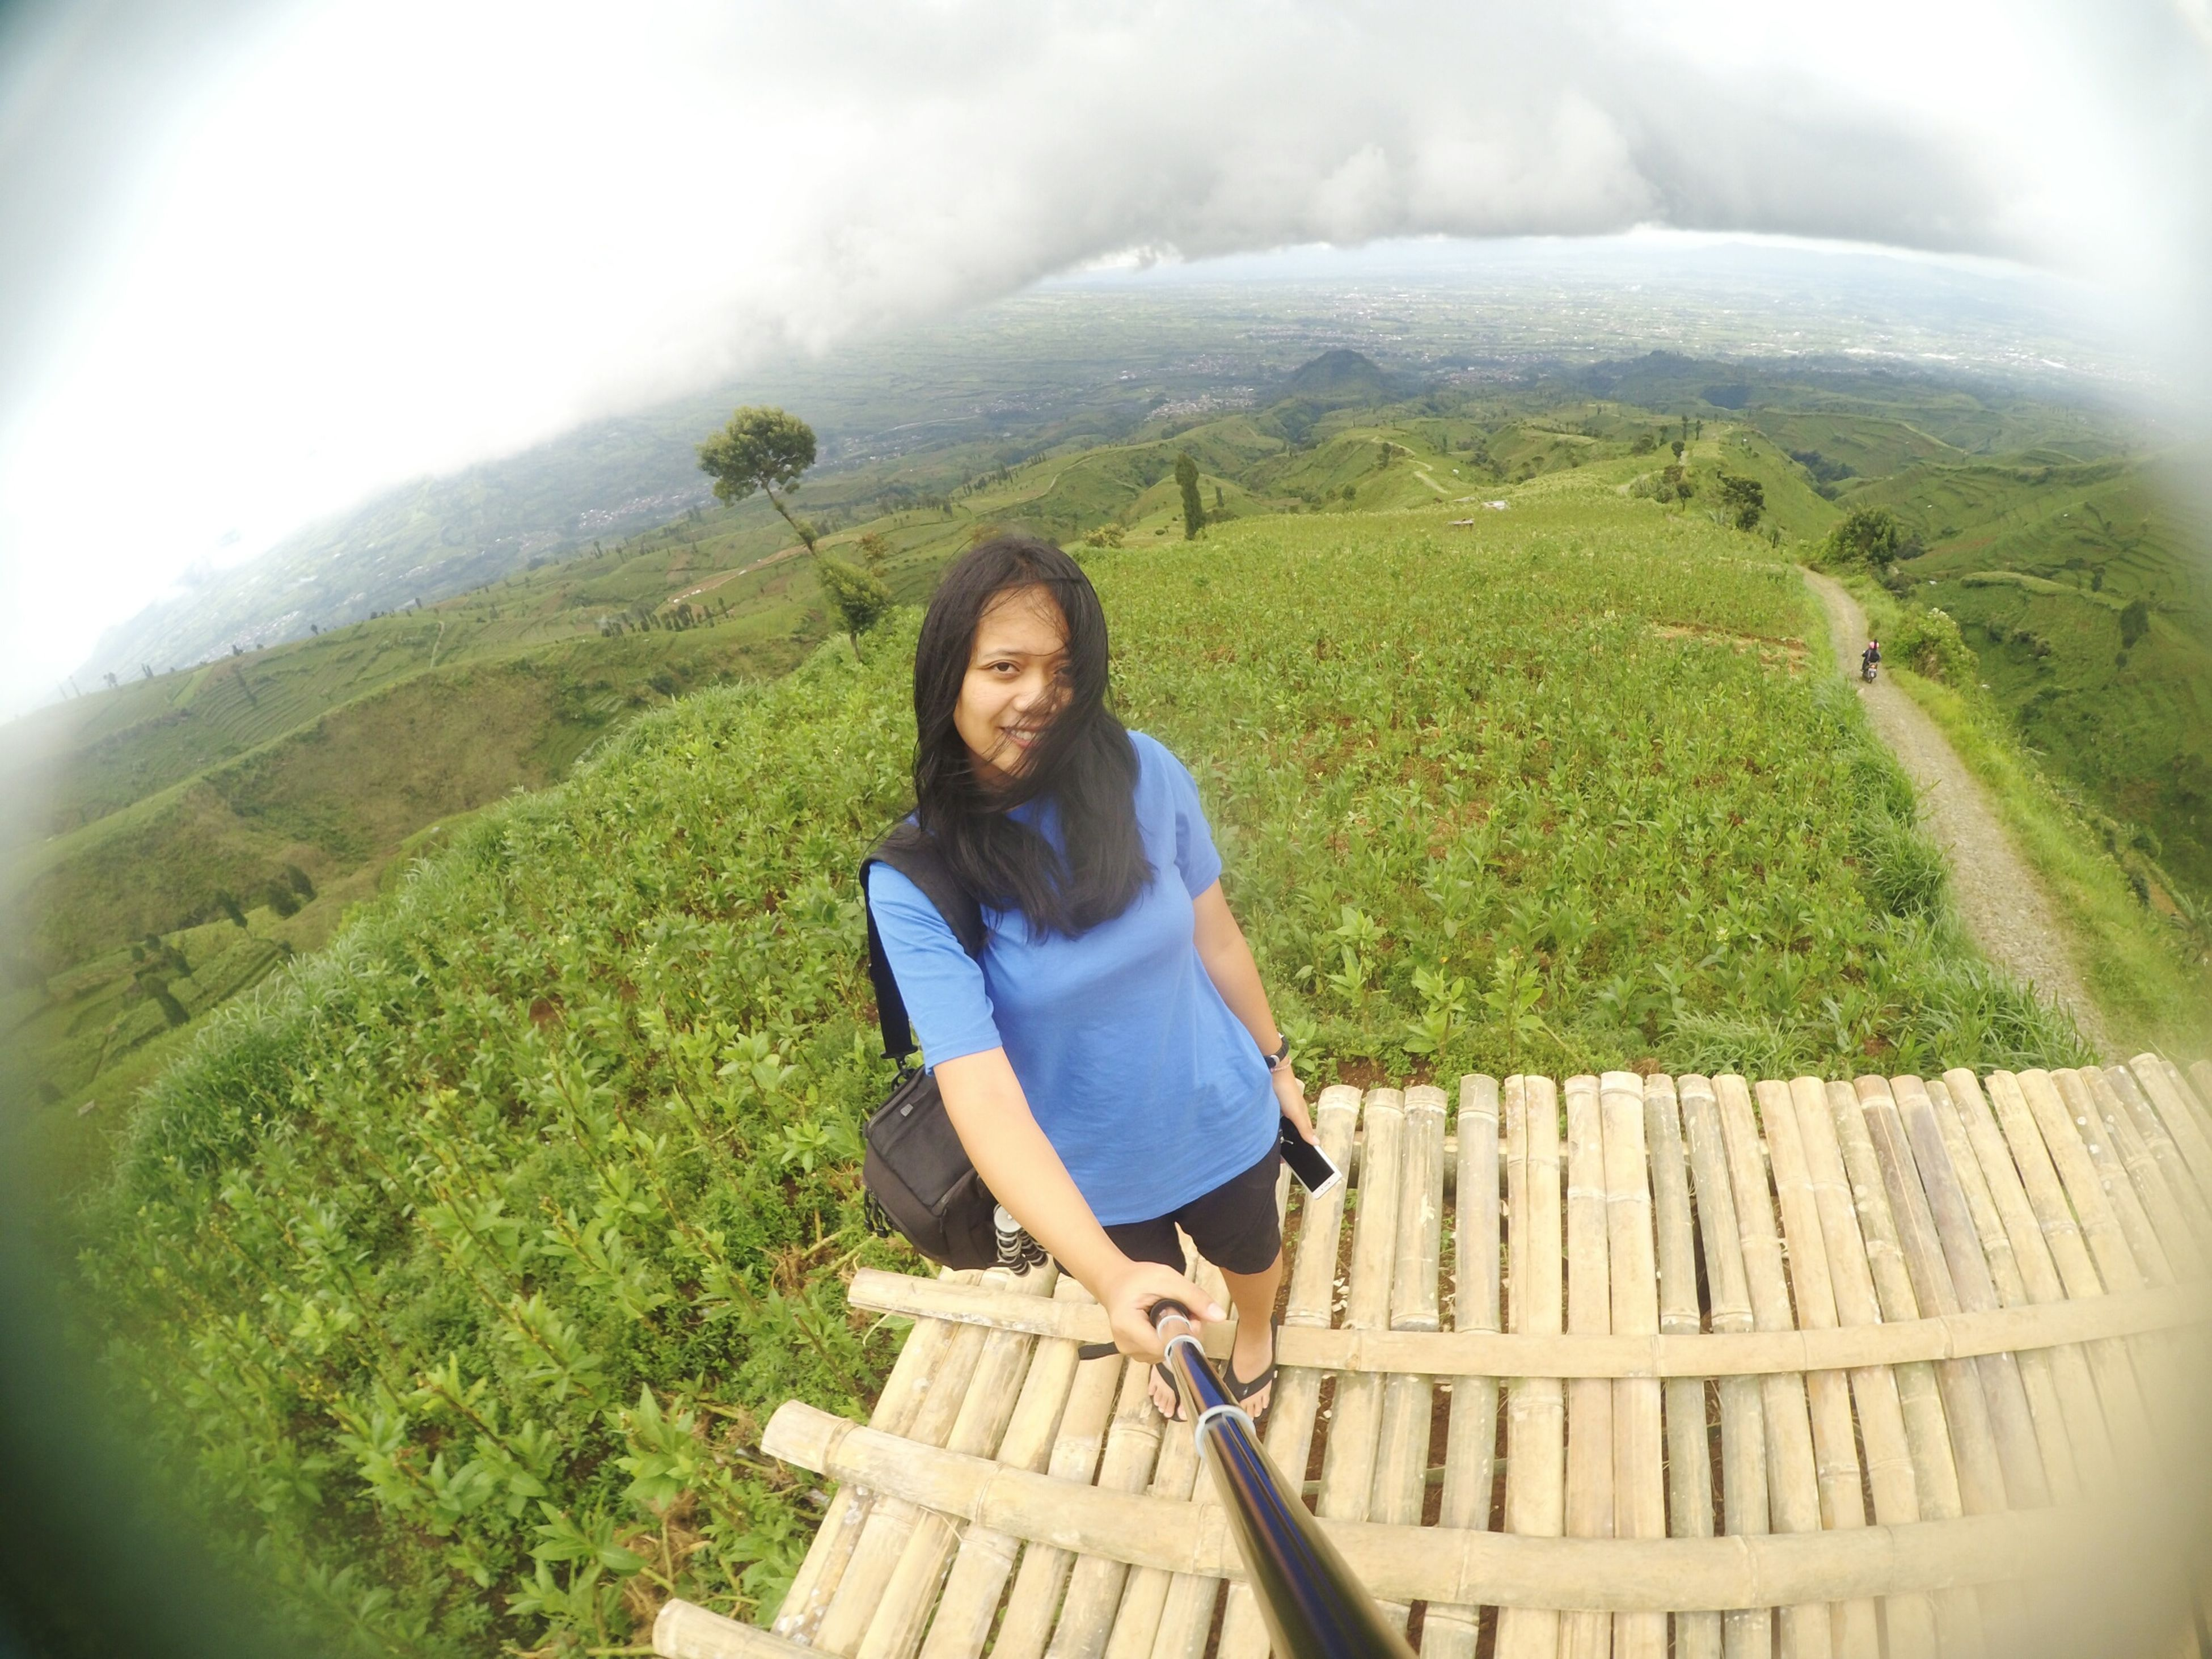 mountain, young adult, young women, leisure activity, lifestyles, travel, person, portrait, looking at camera, casual clothing, smiling, scenics, beauty in nature, beauty, tourism, vacations, nature, journey, tourist, cloud - sky, tranquil scene, mountain range, tranquility, majestic, weekend activities, non-urban scene, green color